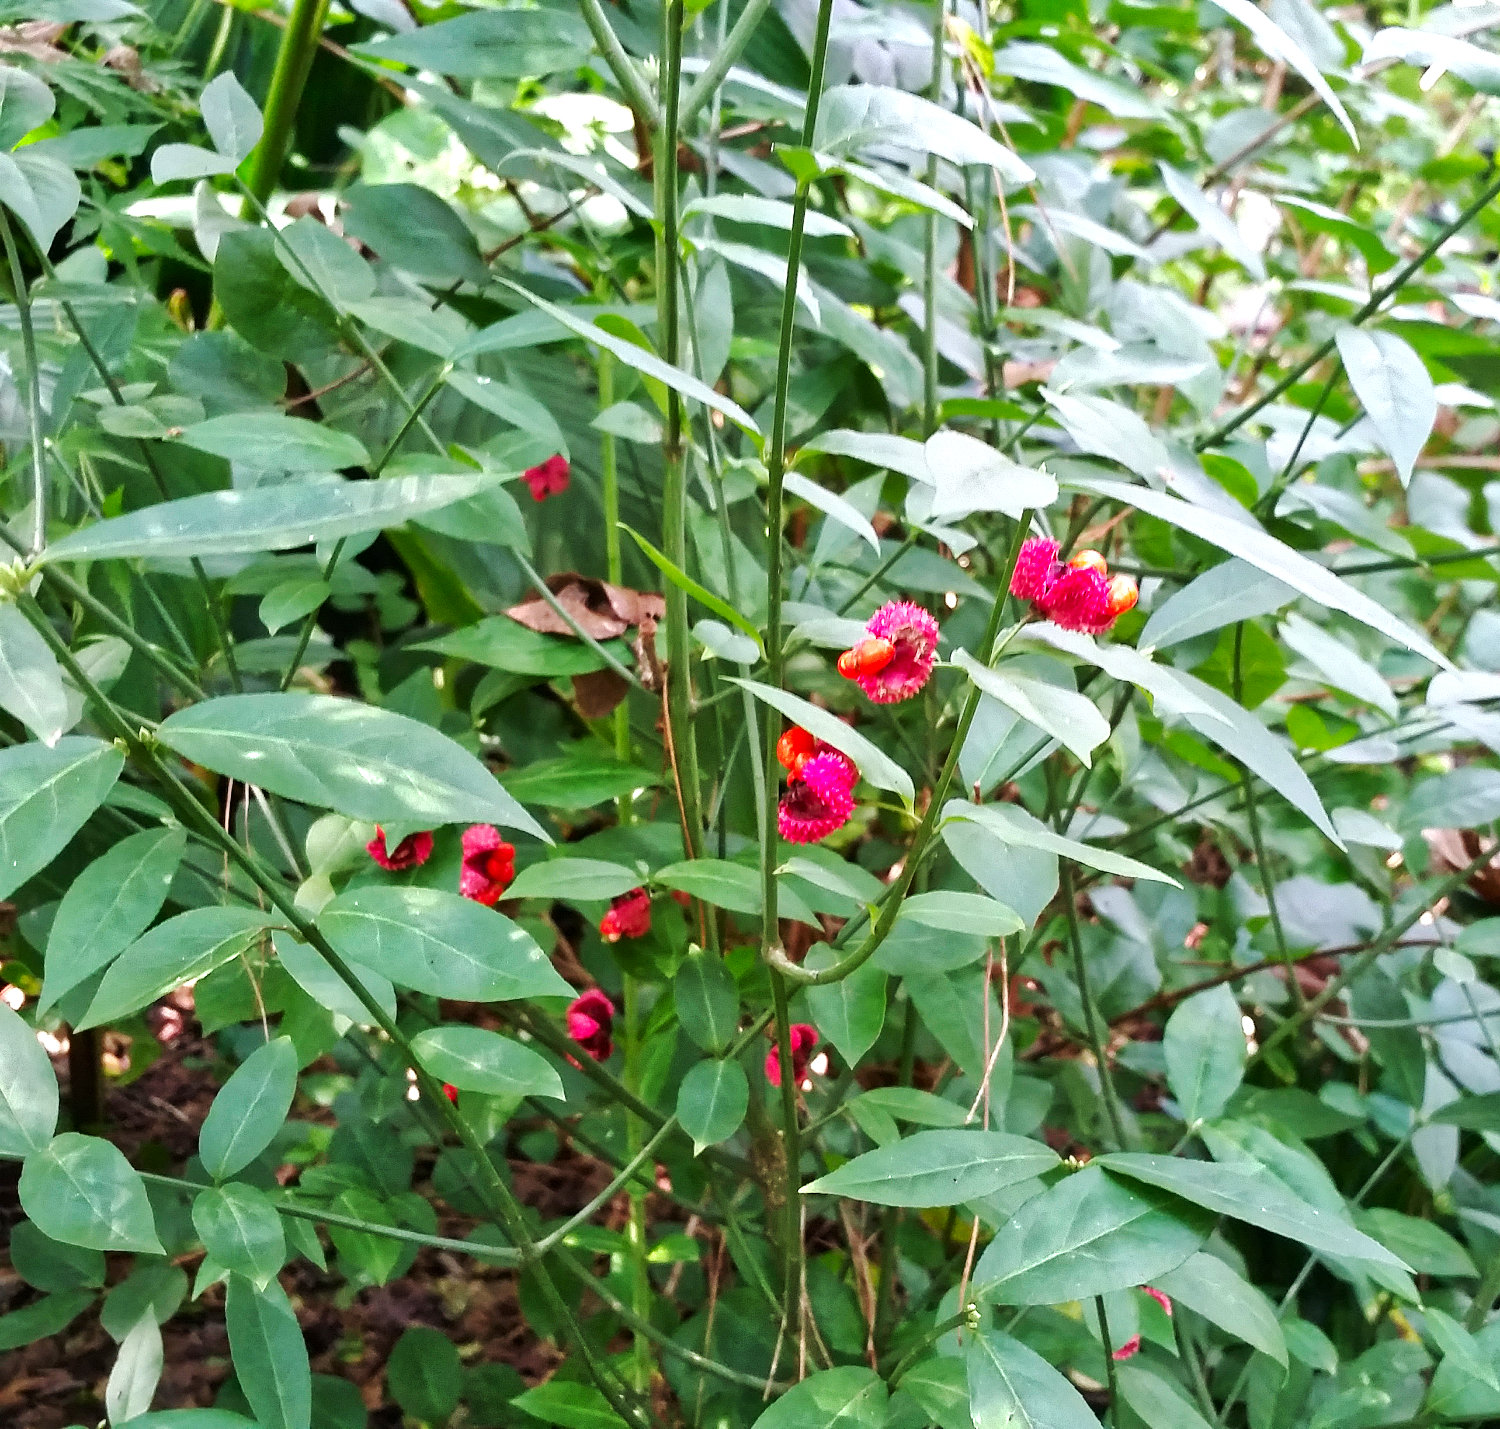 The seed pods on this native shrub earned its name 'hearts-a-burstin'.""